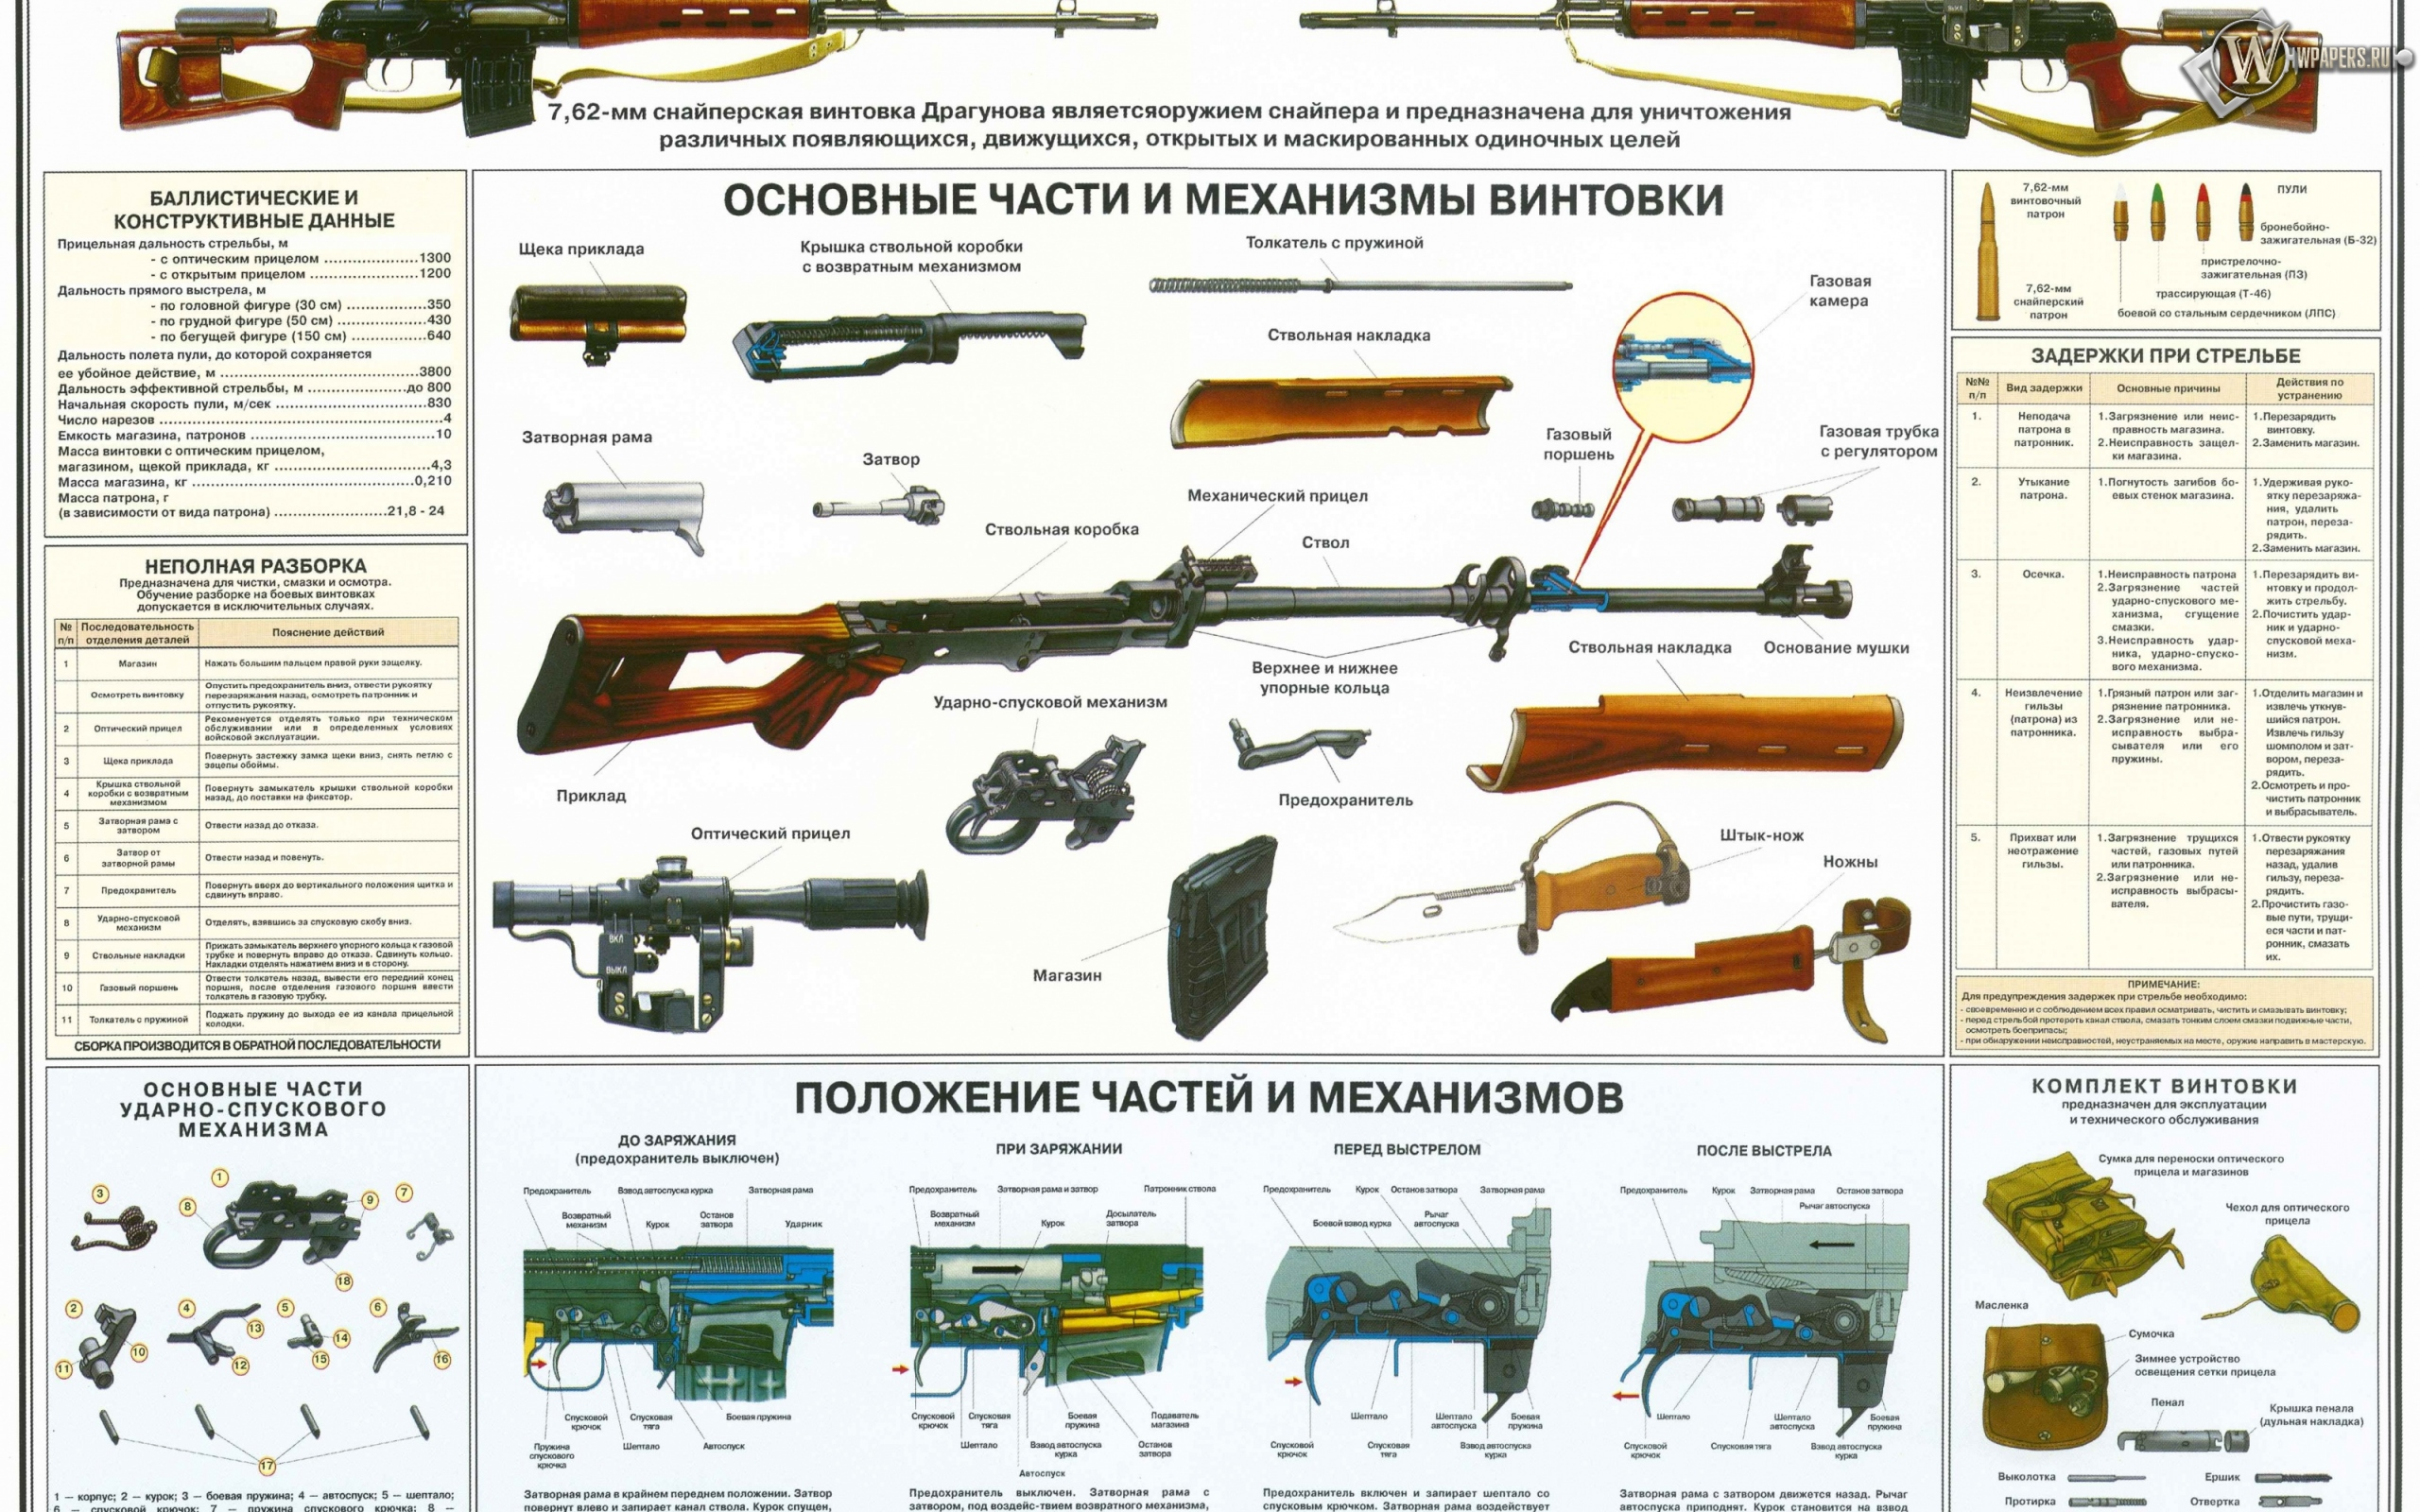 http://wpapers.ru/wallpapers/Weapon/11698/2560x1600_%D0%A1%D1%85%D0%B5%D0%BC%D0%BC%D0%B0-%D0%A1%D0%92%D0%94.jpg